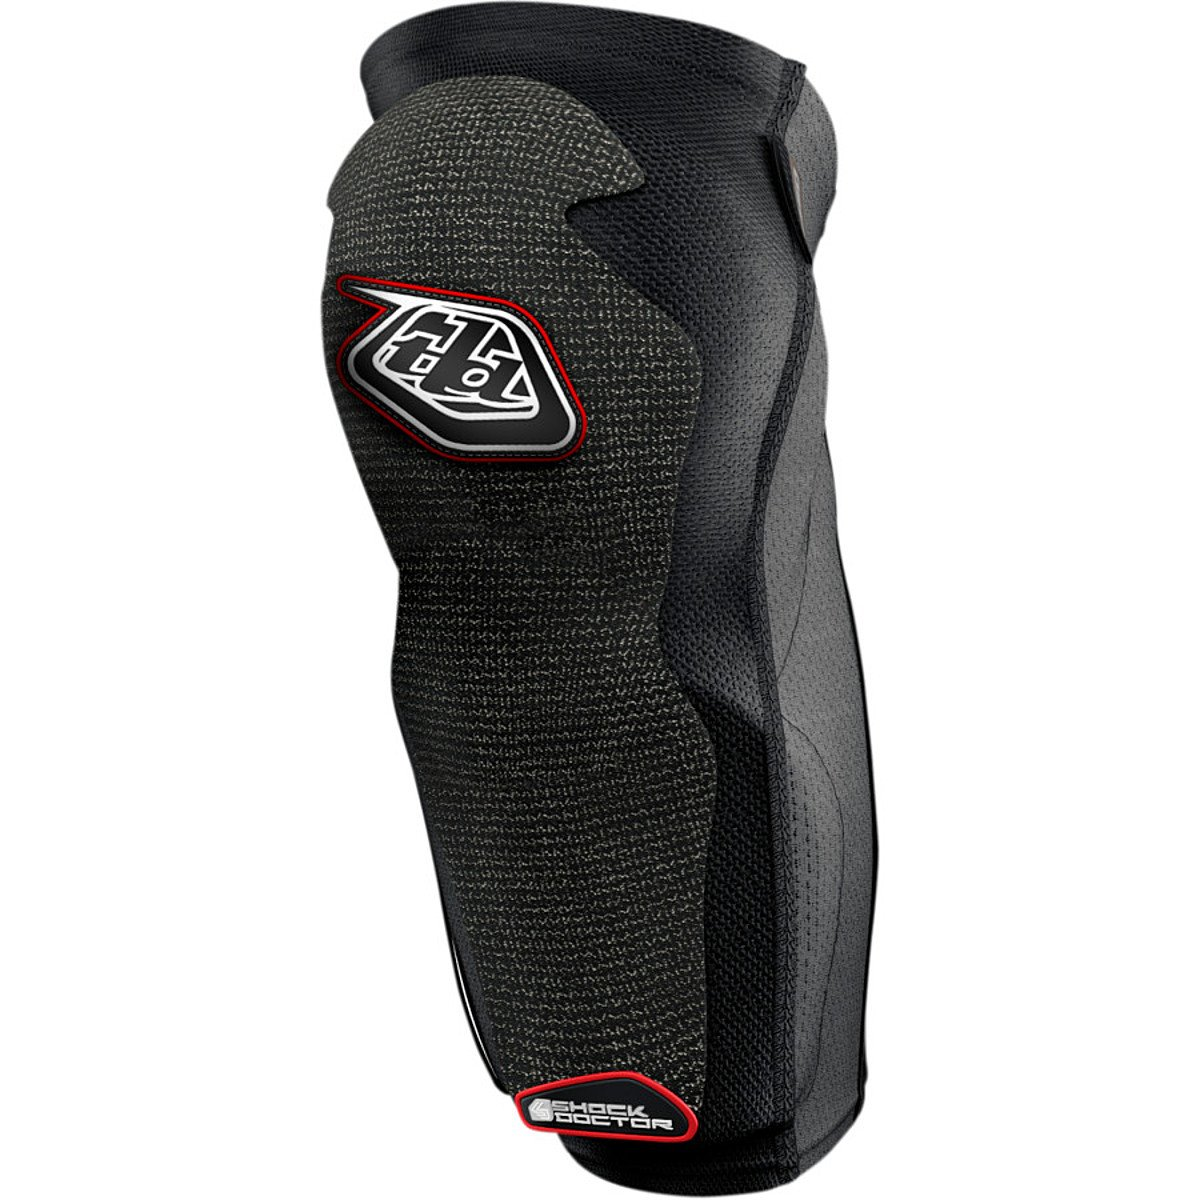 Troy Lee Designs KG 5450 Knee/Shin Guard Guard Solid Black, S by Troy Lee Designs (Image #1)